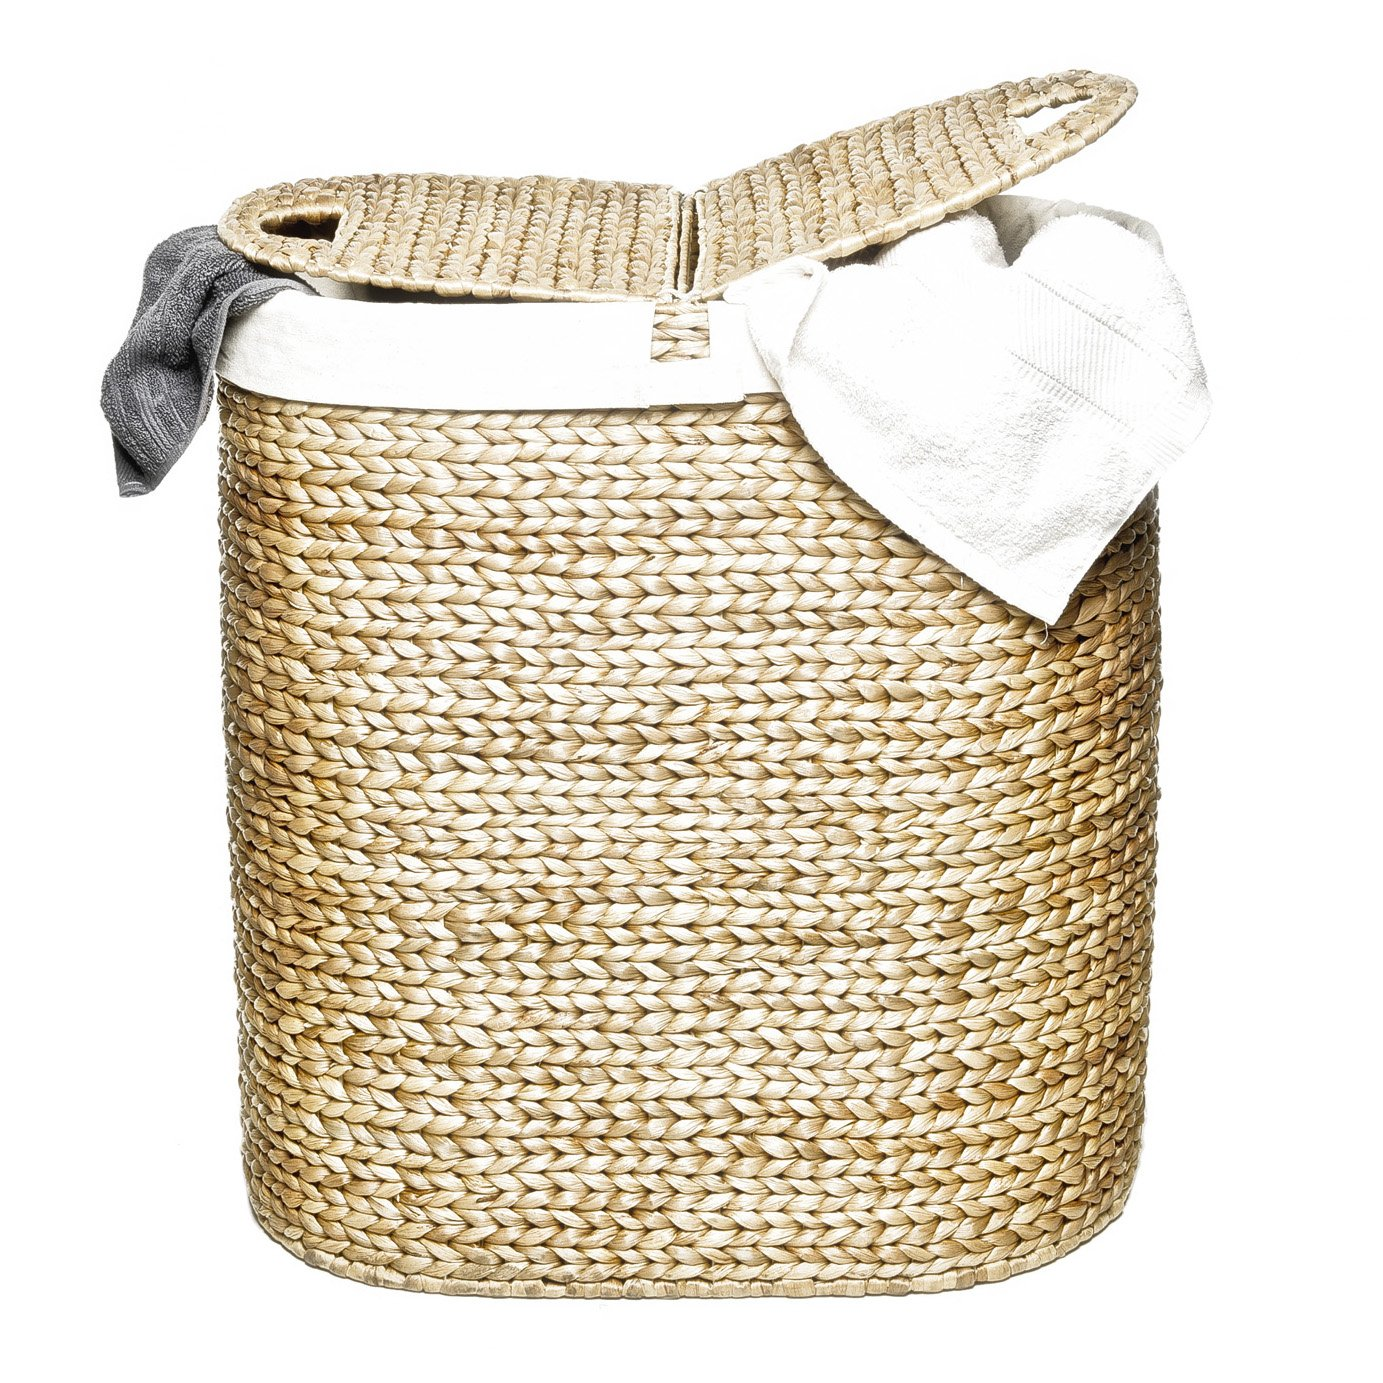 Designer Clothes Hampers Decorative Laundry Hamper With Lid Webnuggetz